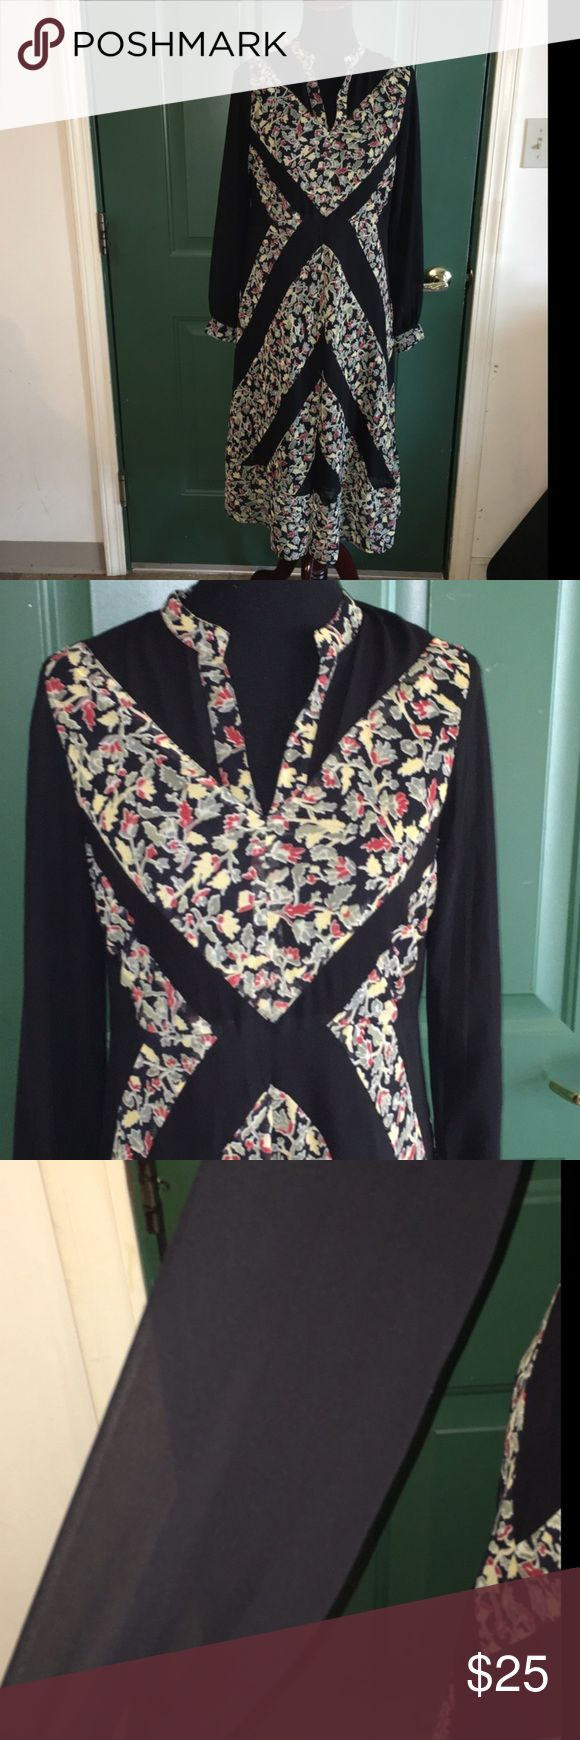 NWT Black Floral Asos Dress Size 6 New with tags!!!  Black floral maxi dress by Asos.  Long sleeves, mandarin collar.  Has solid black sheer panels inset.  Size 6. Dress is 46 inches long.   Important:   All items are freshly laundered as applicable prior to shipping (new items and shoes excluded).  Not all my items are from pet/smoke free homes.  Price is reduced to reflect this!   Thank you for looking! Asos Dresses Maxi